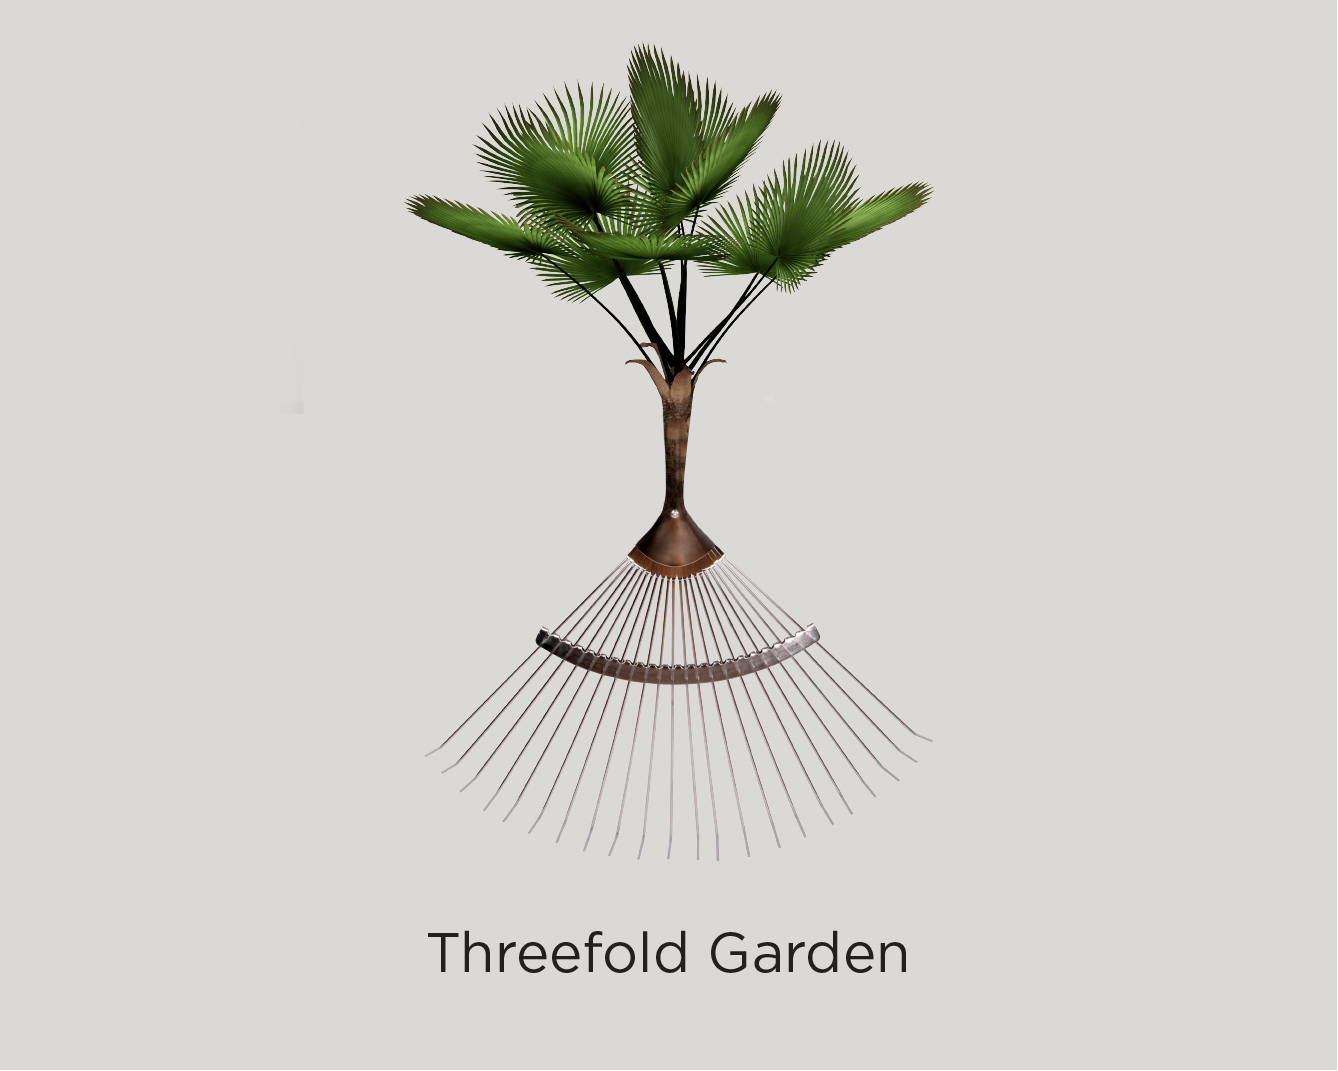 A plant sprouting out of a rake - Threefold Garden